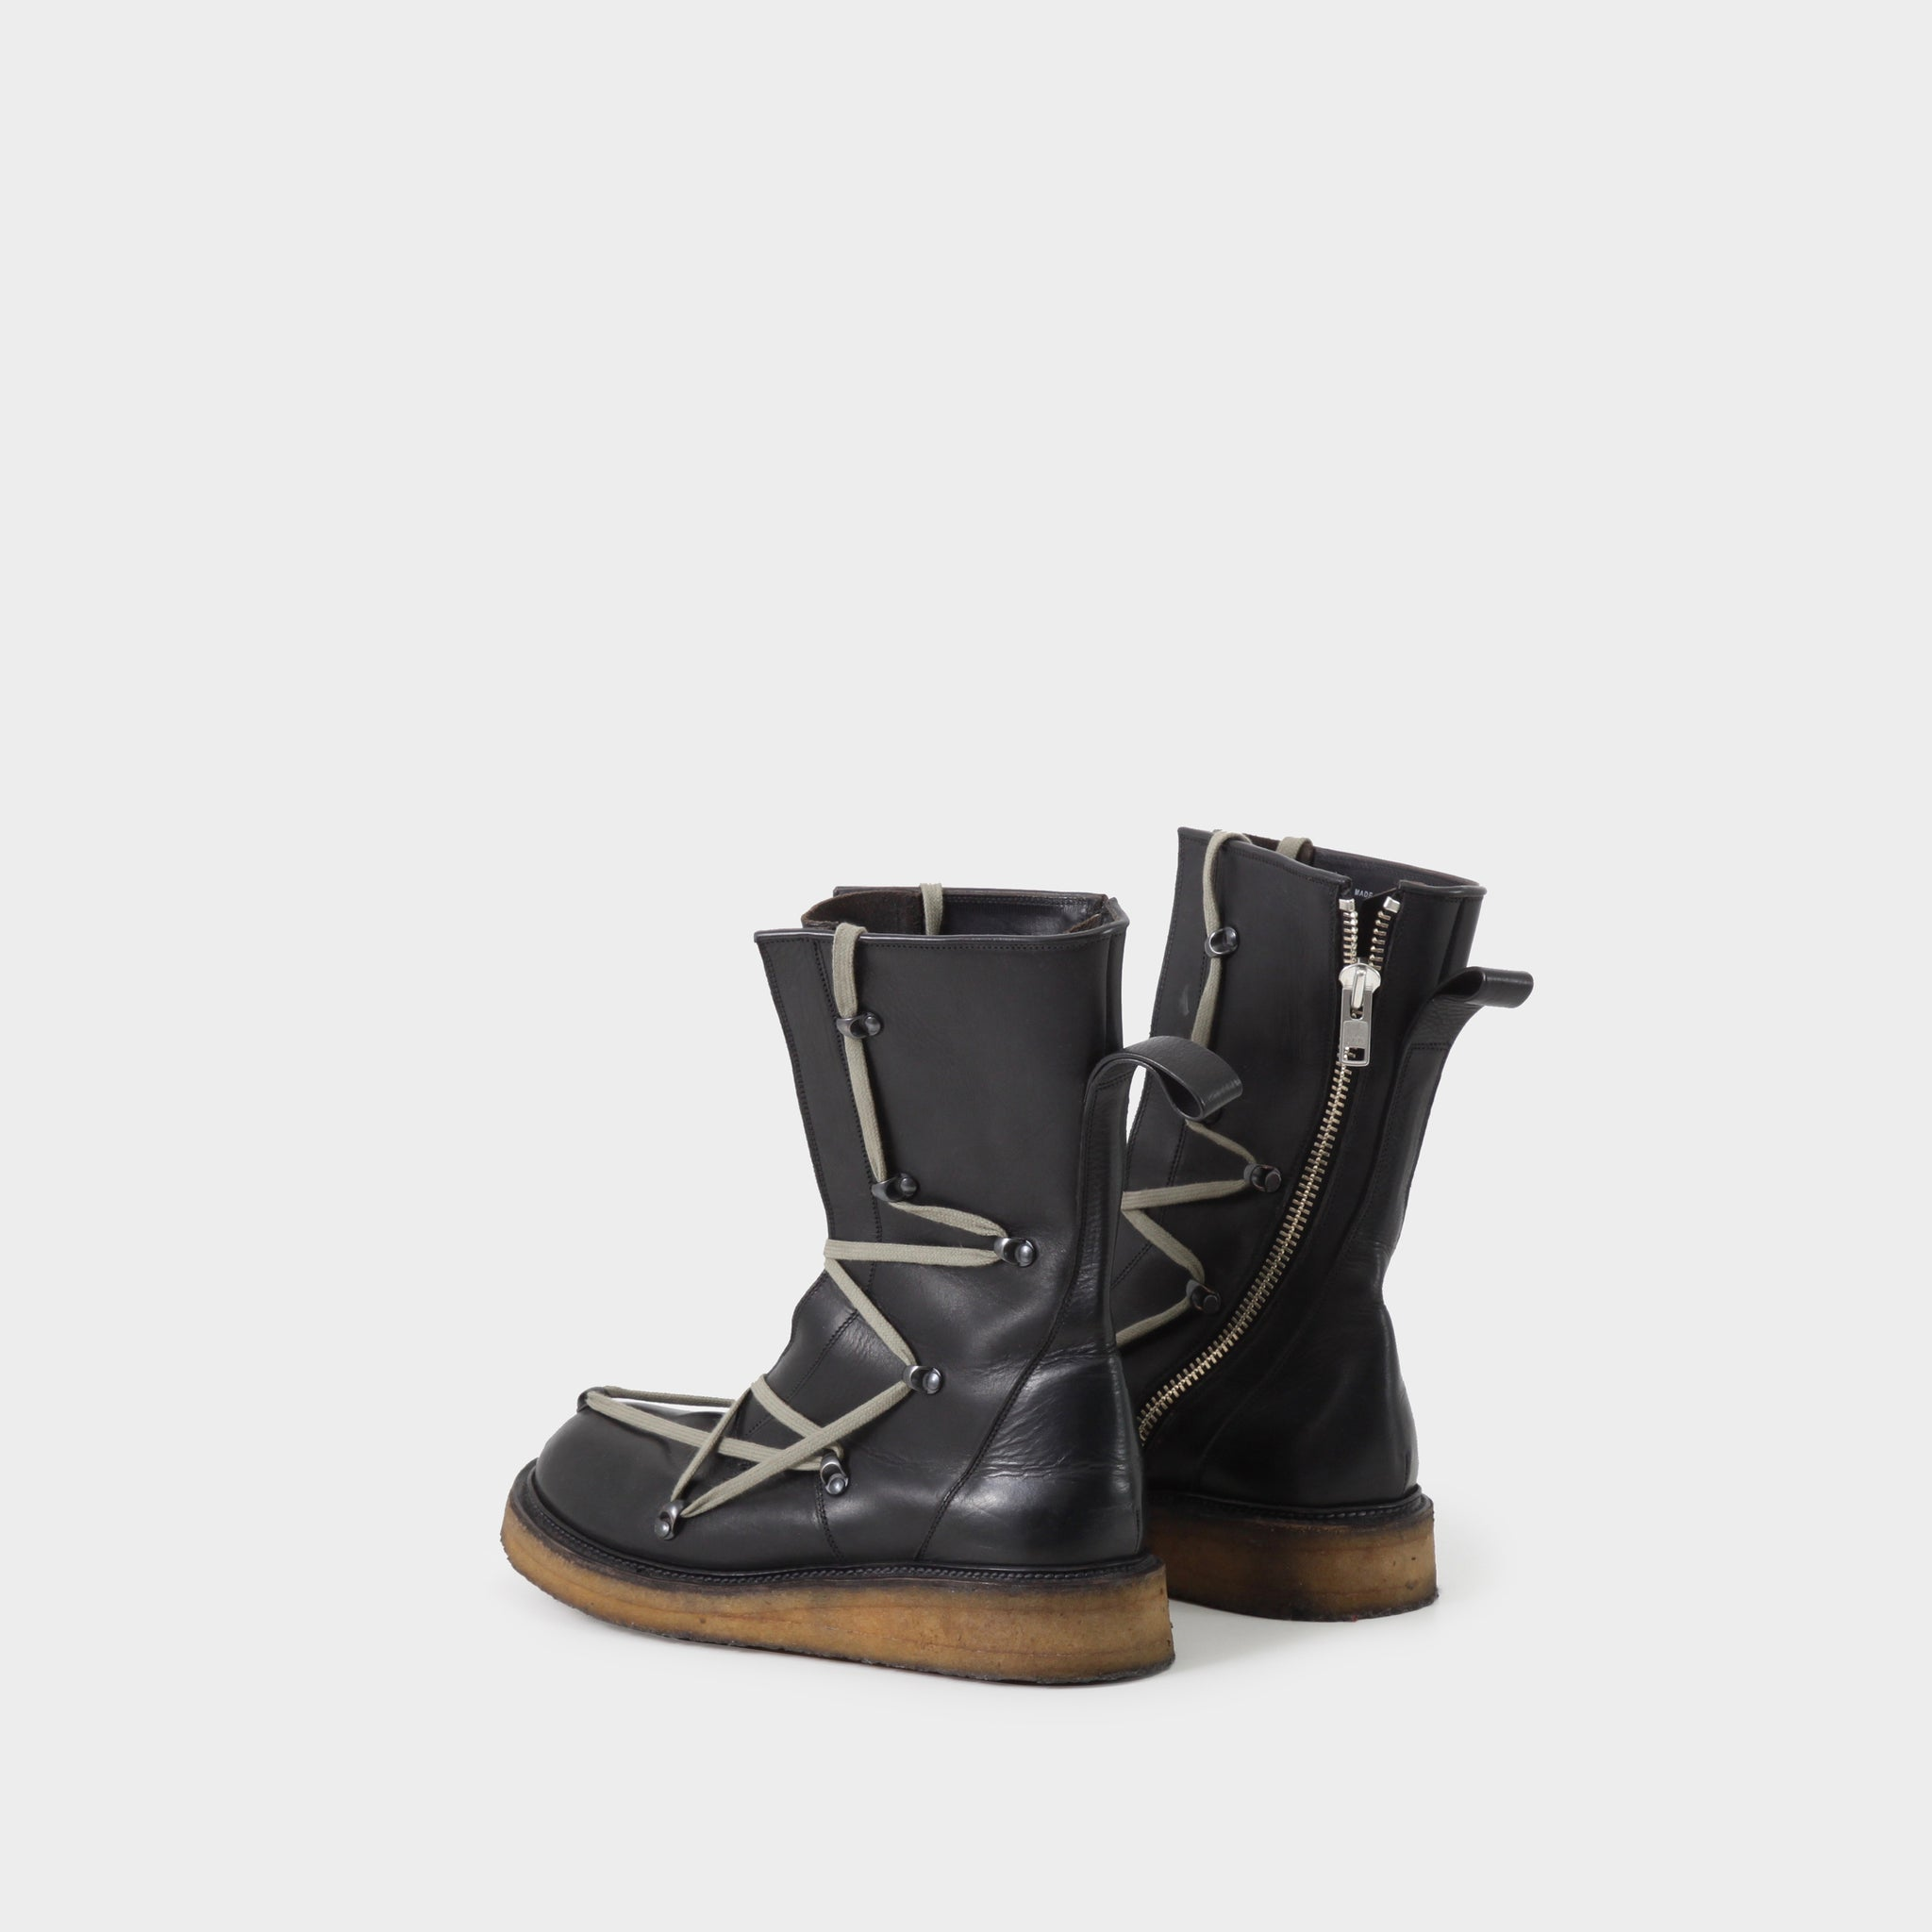 Rick Owens Pentagram Laced Creeper Boots